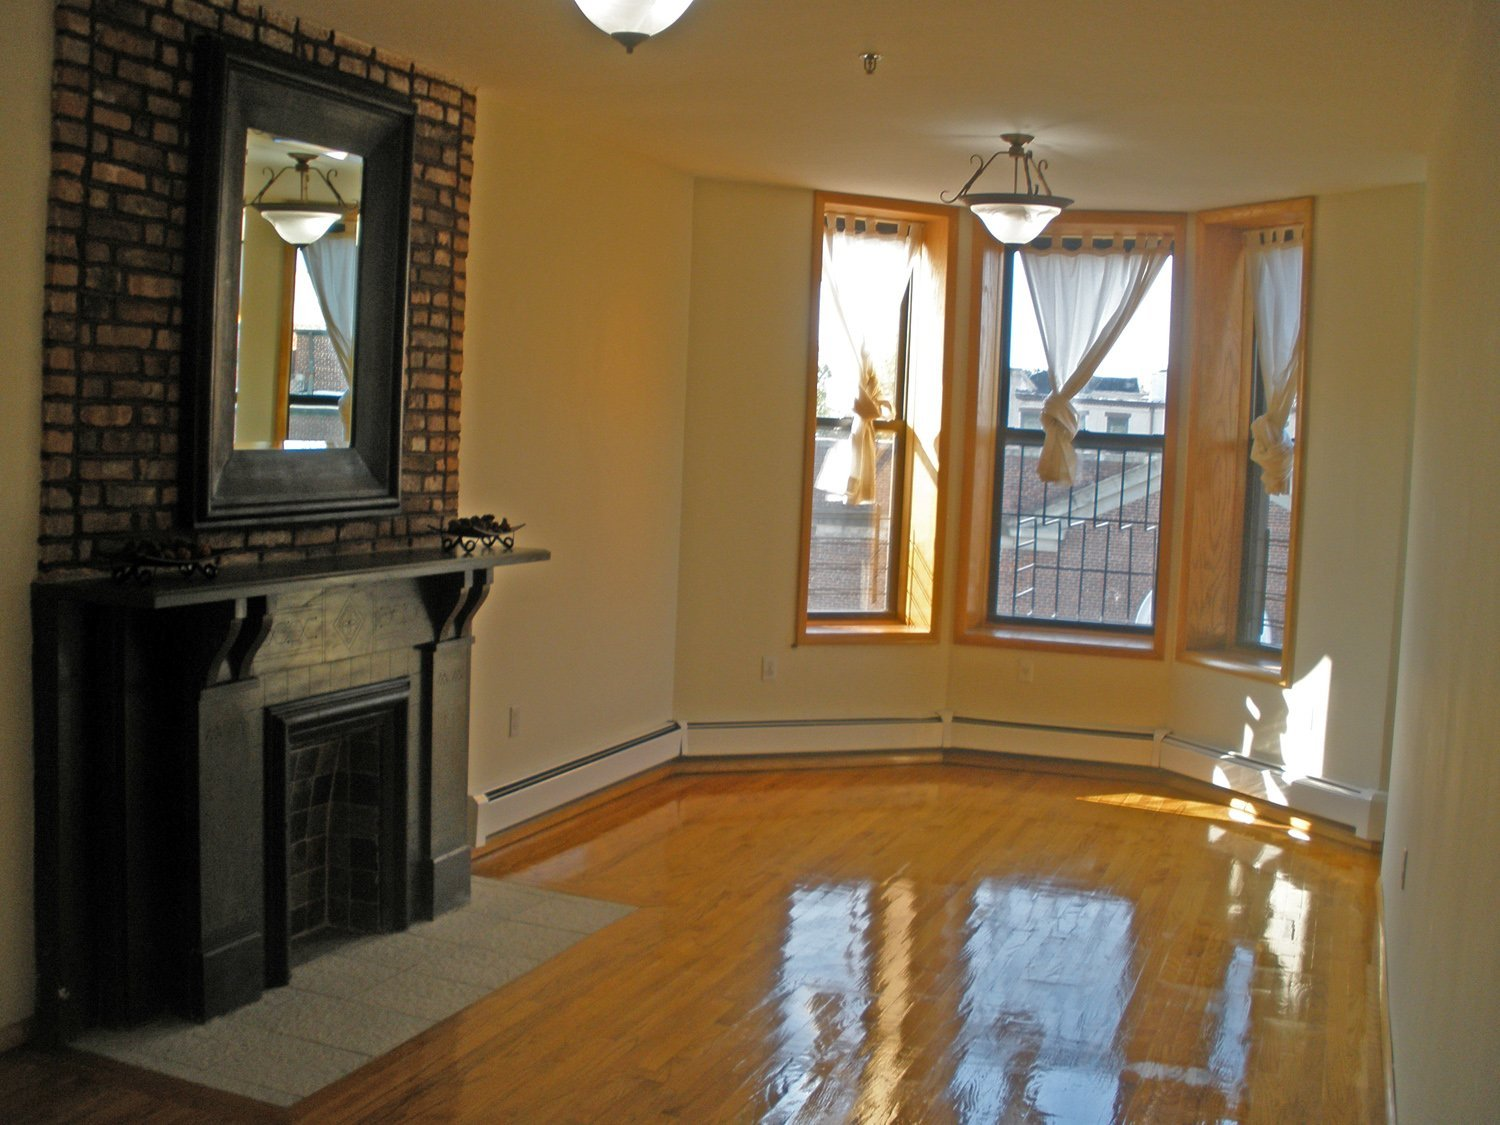 1br apt for rent crg3118